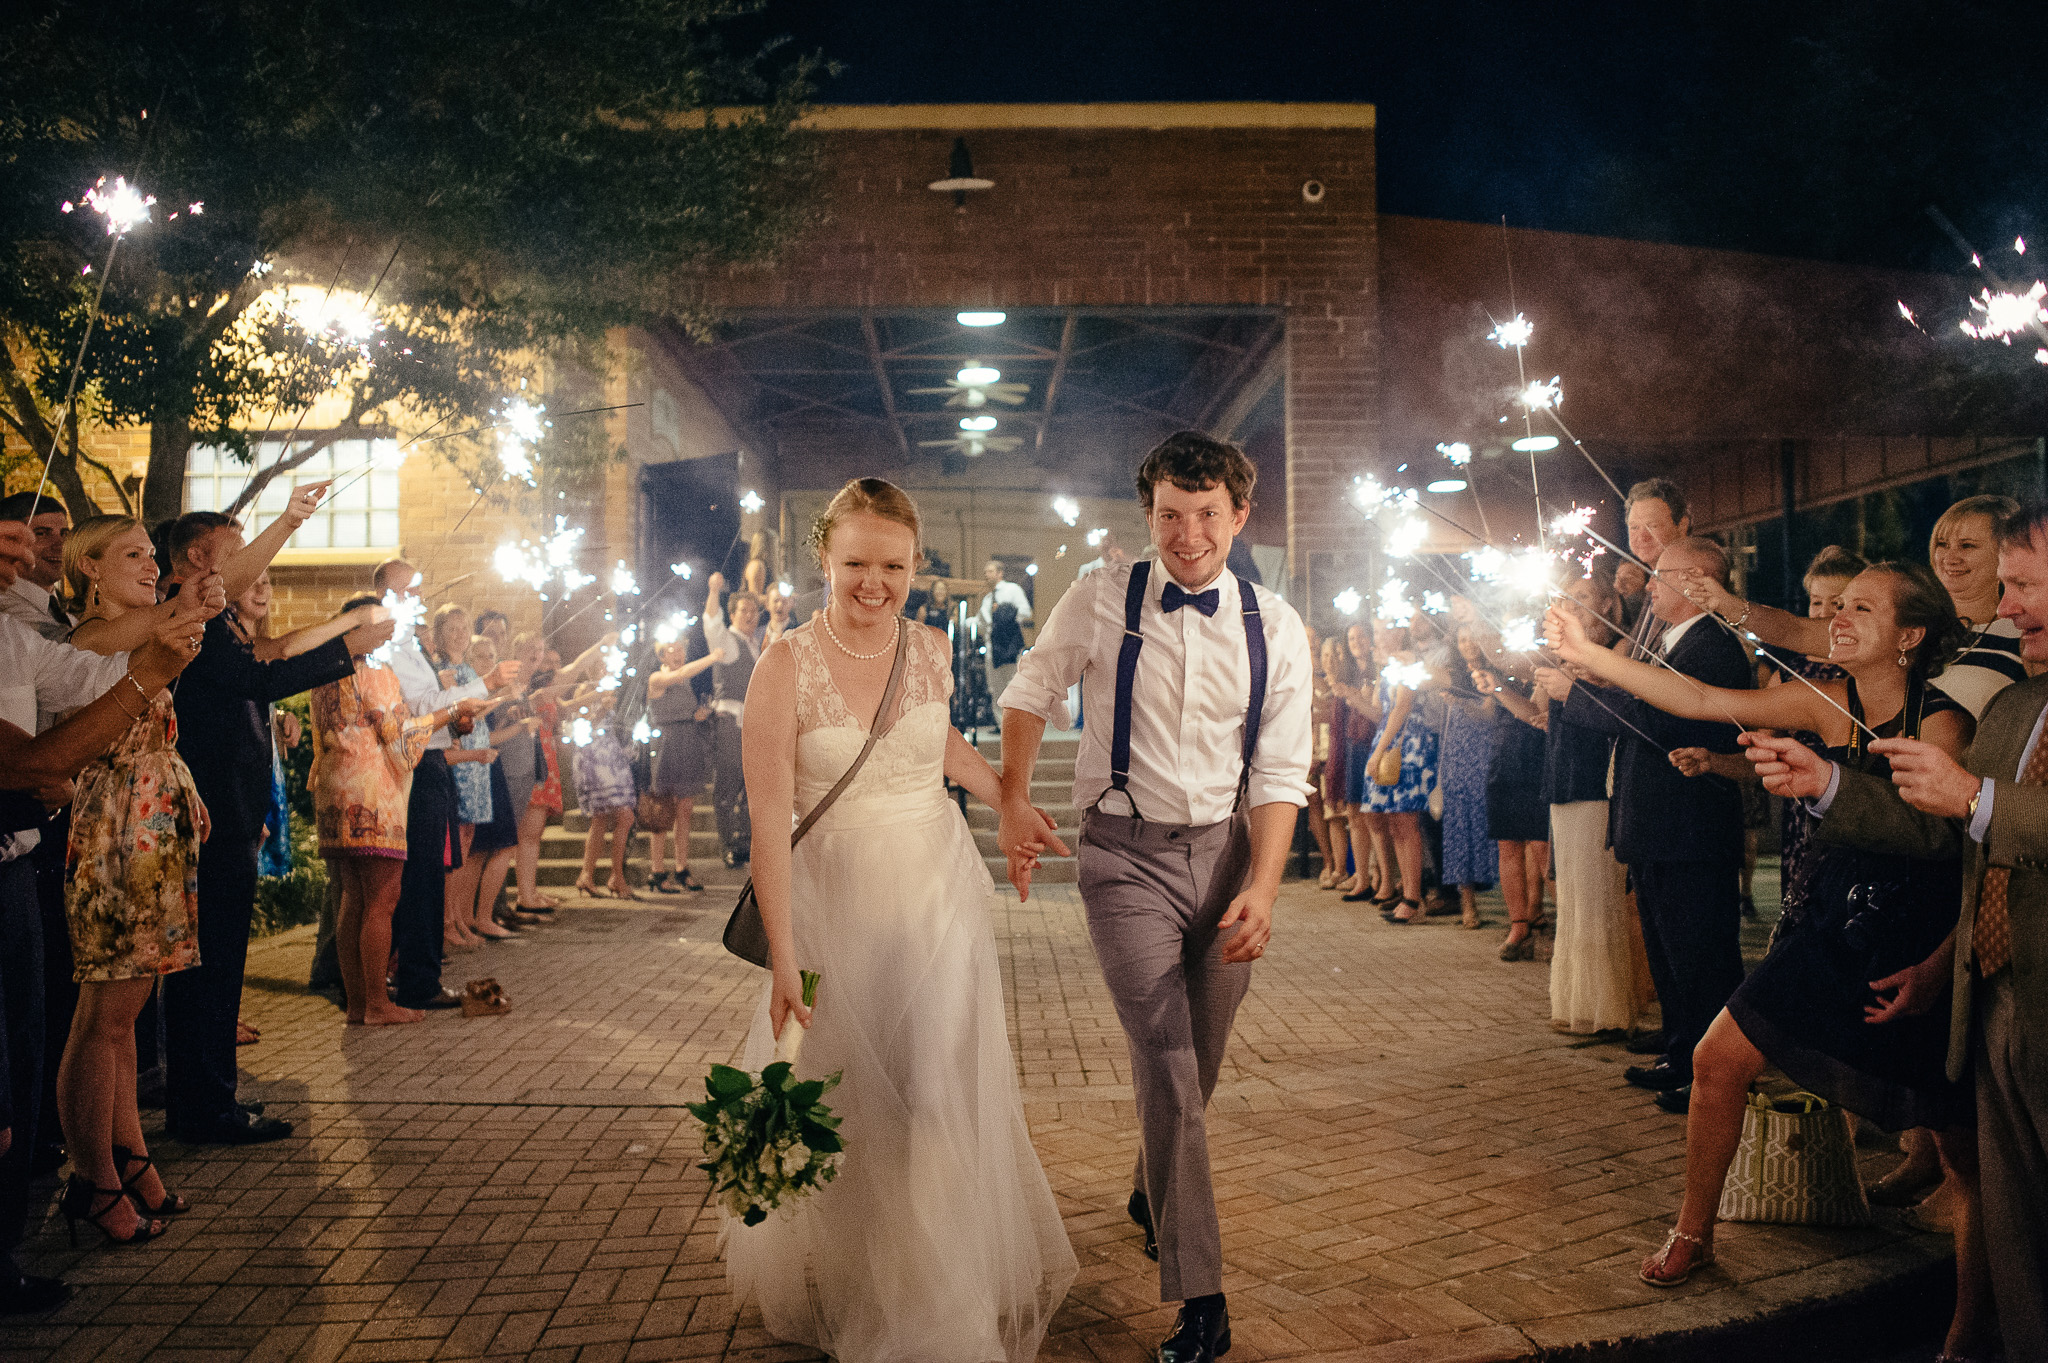 Winter Park Farmers Market Wedding Reception